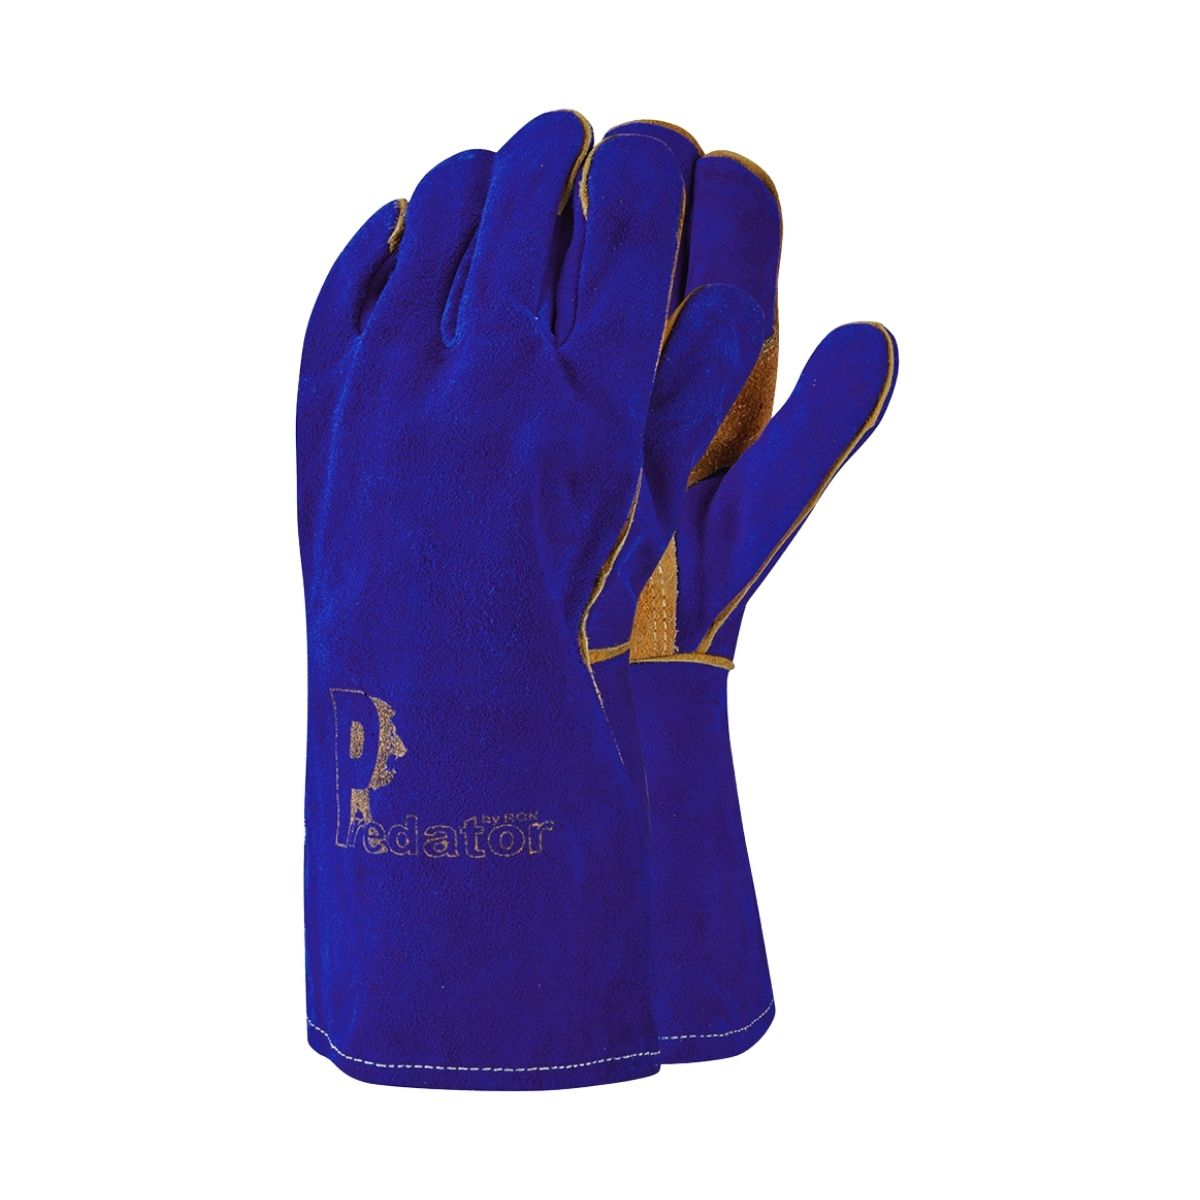 GL2058 Blue_Gold Welding Gauntlets - Main